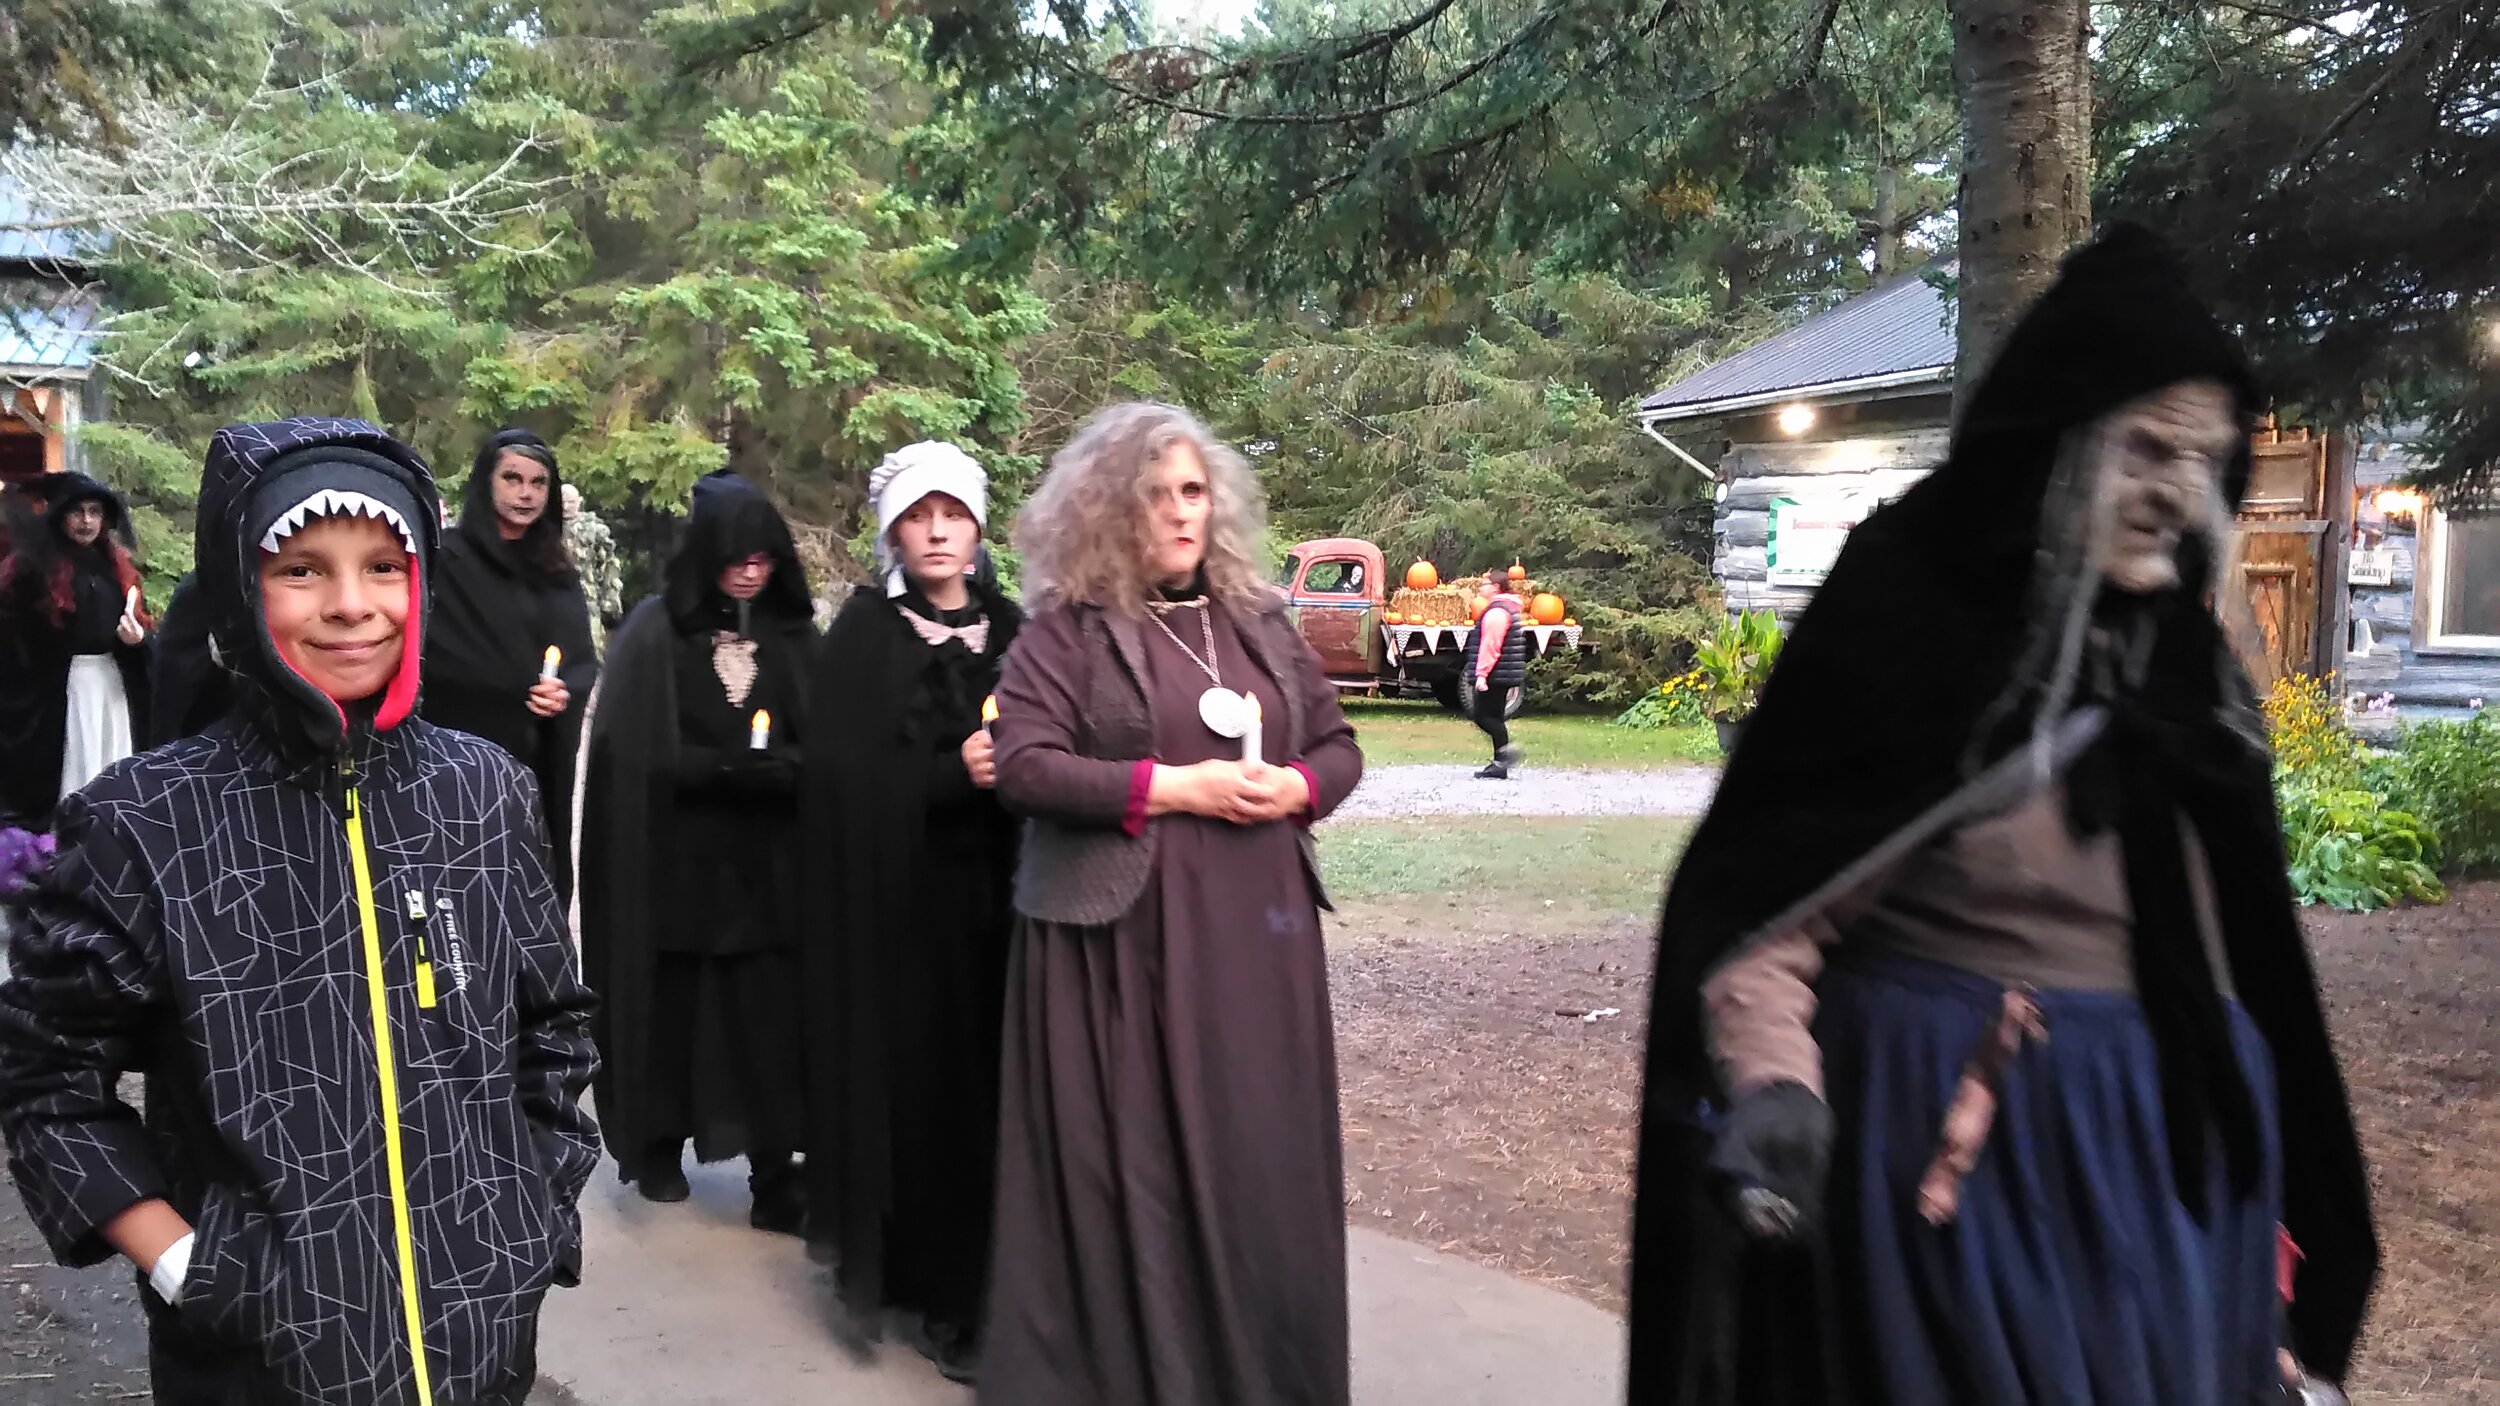 Fright Fest Sanders Farm Witches